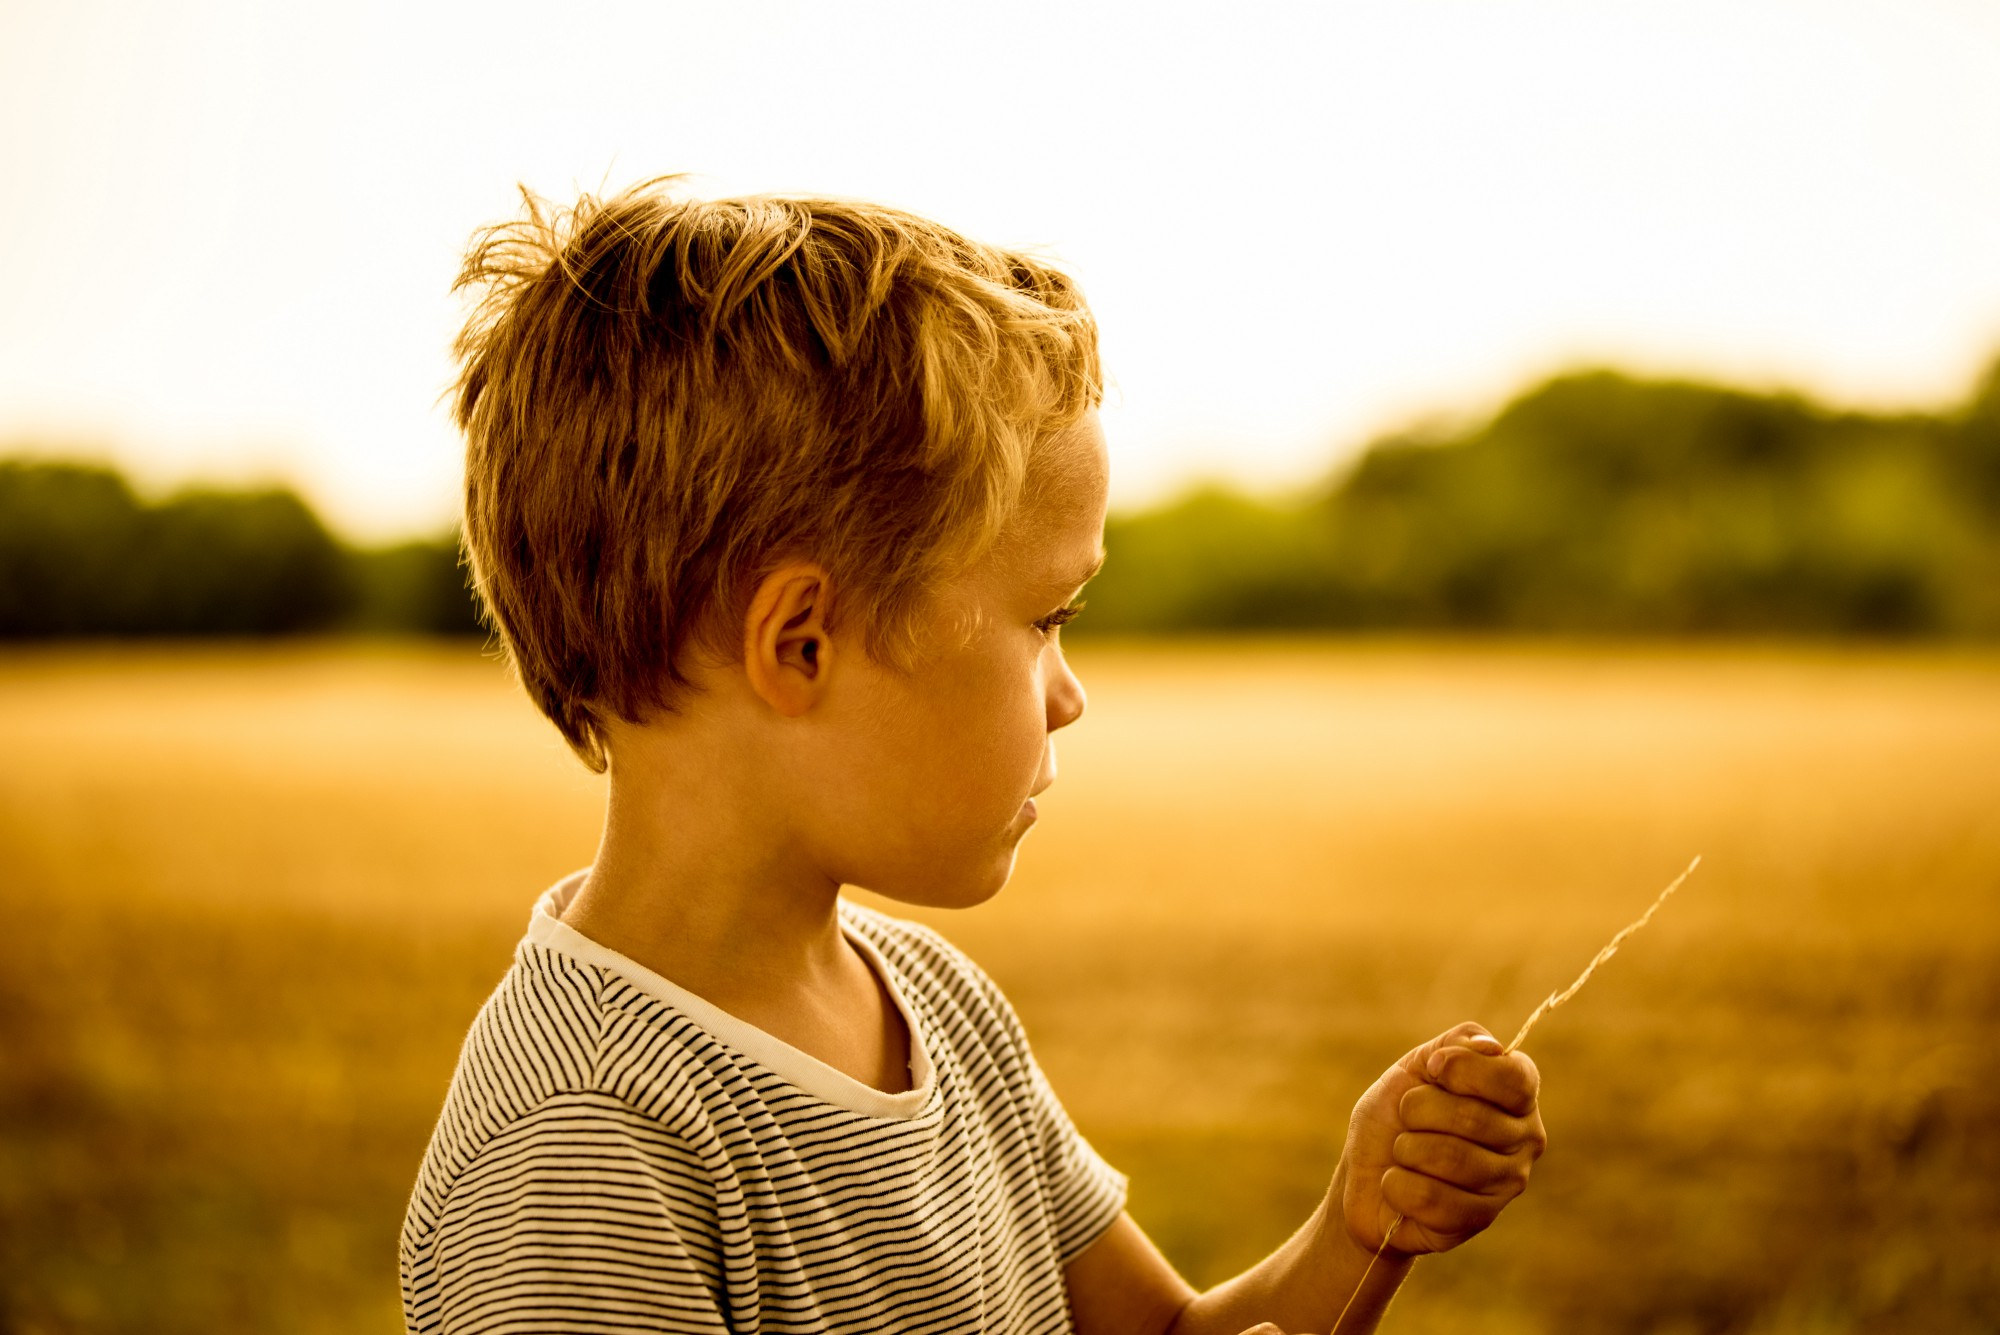 anxious young boy holding piece of straw looking at a field